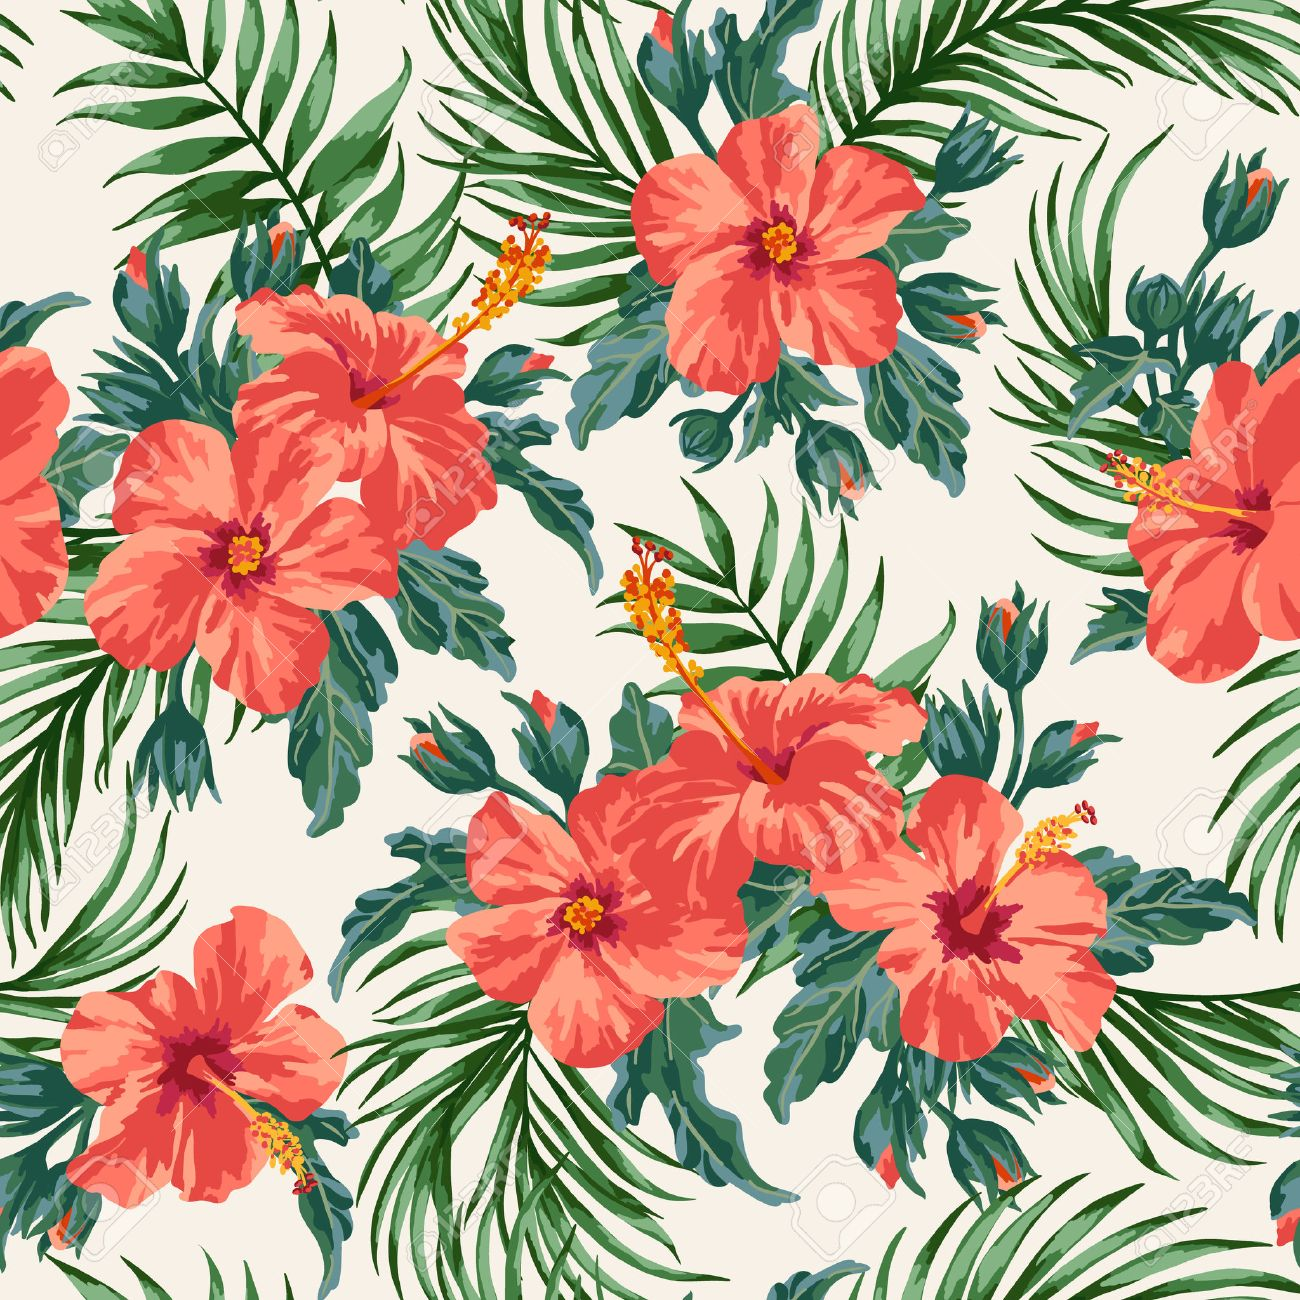 Seamless Exotic Pattern With Tropical Leaves And Flowers On A White Background Hibiscus Palm